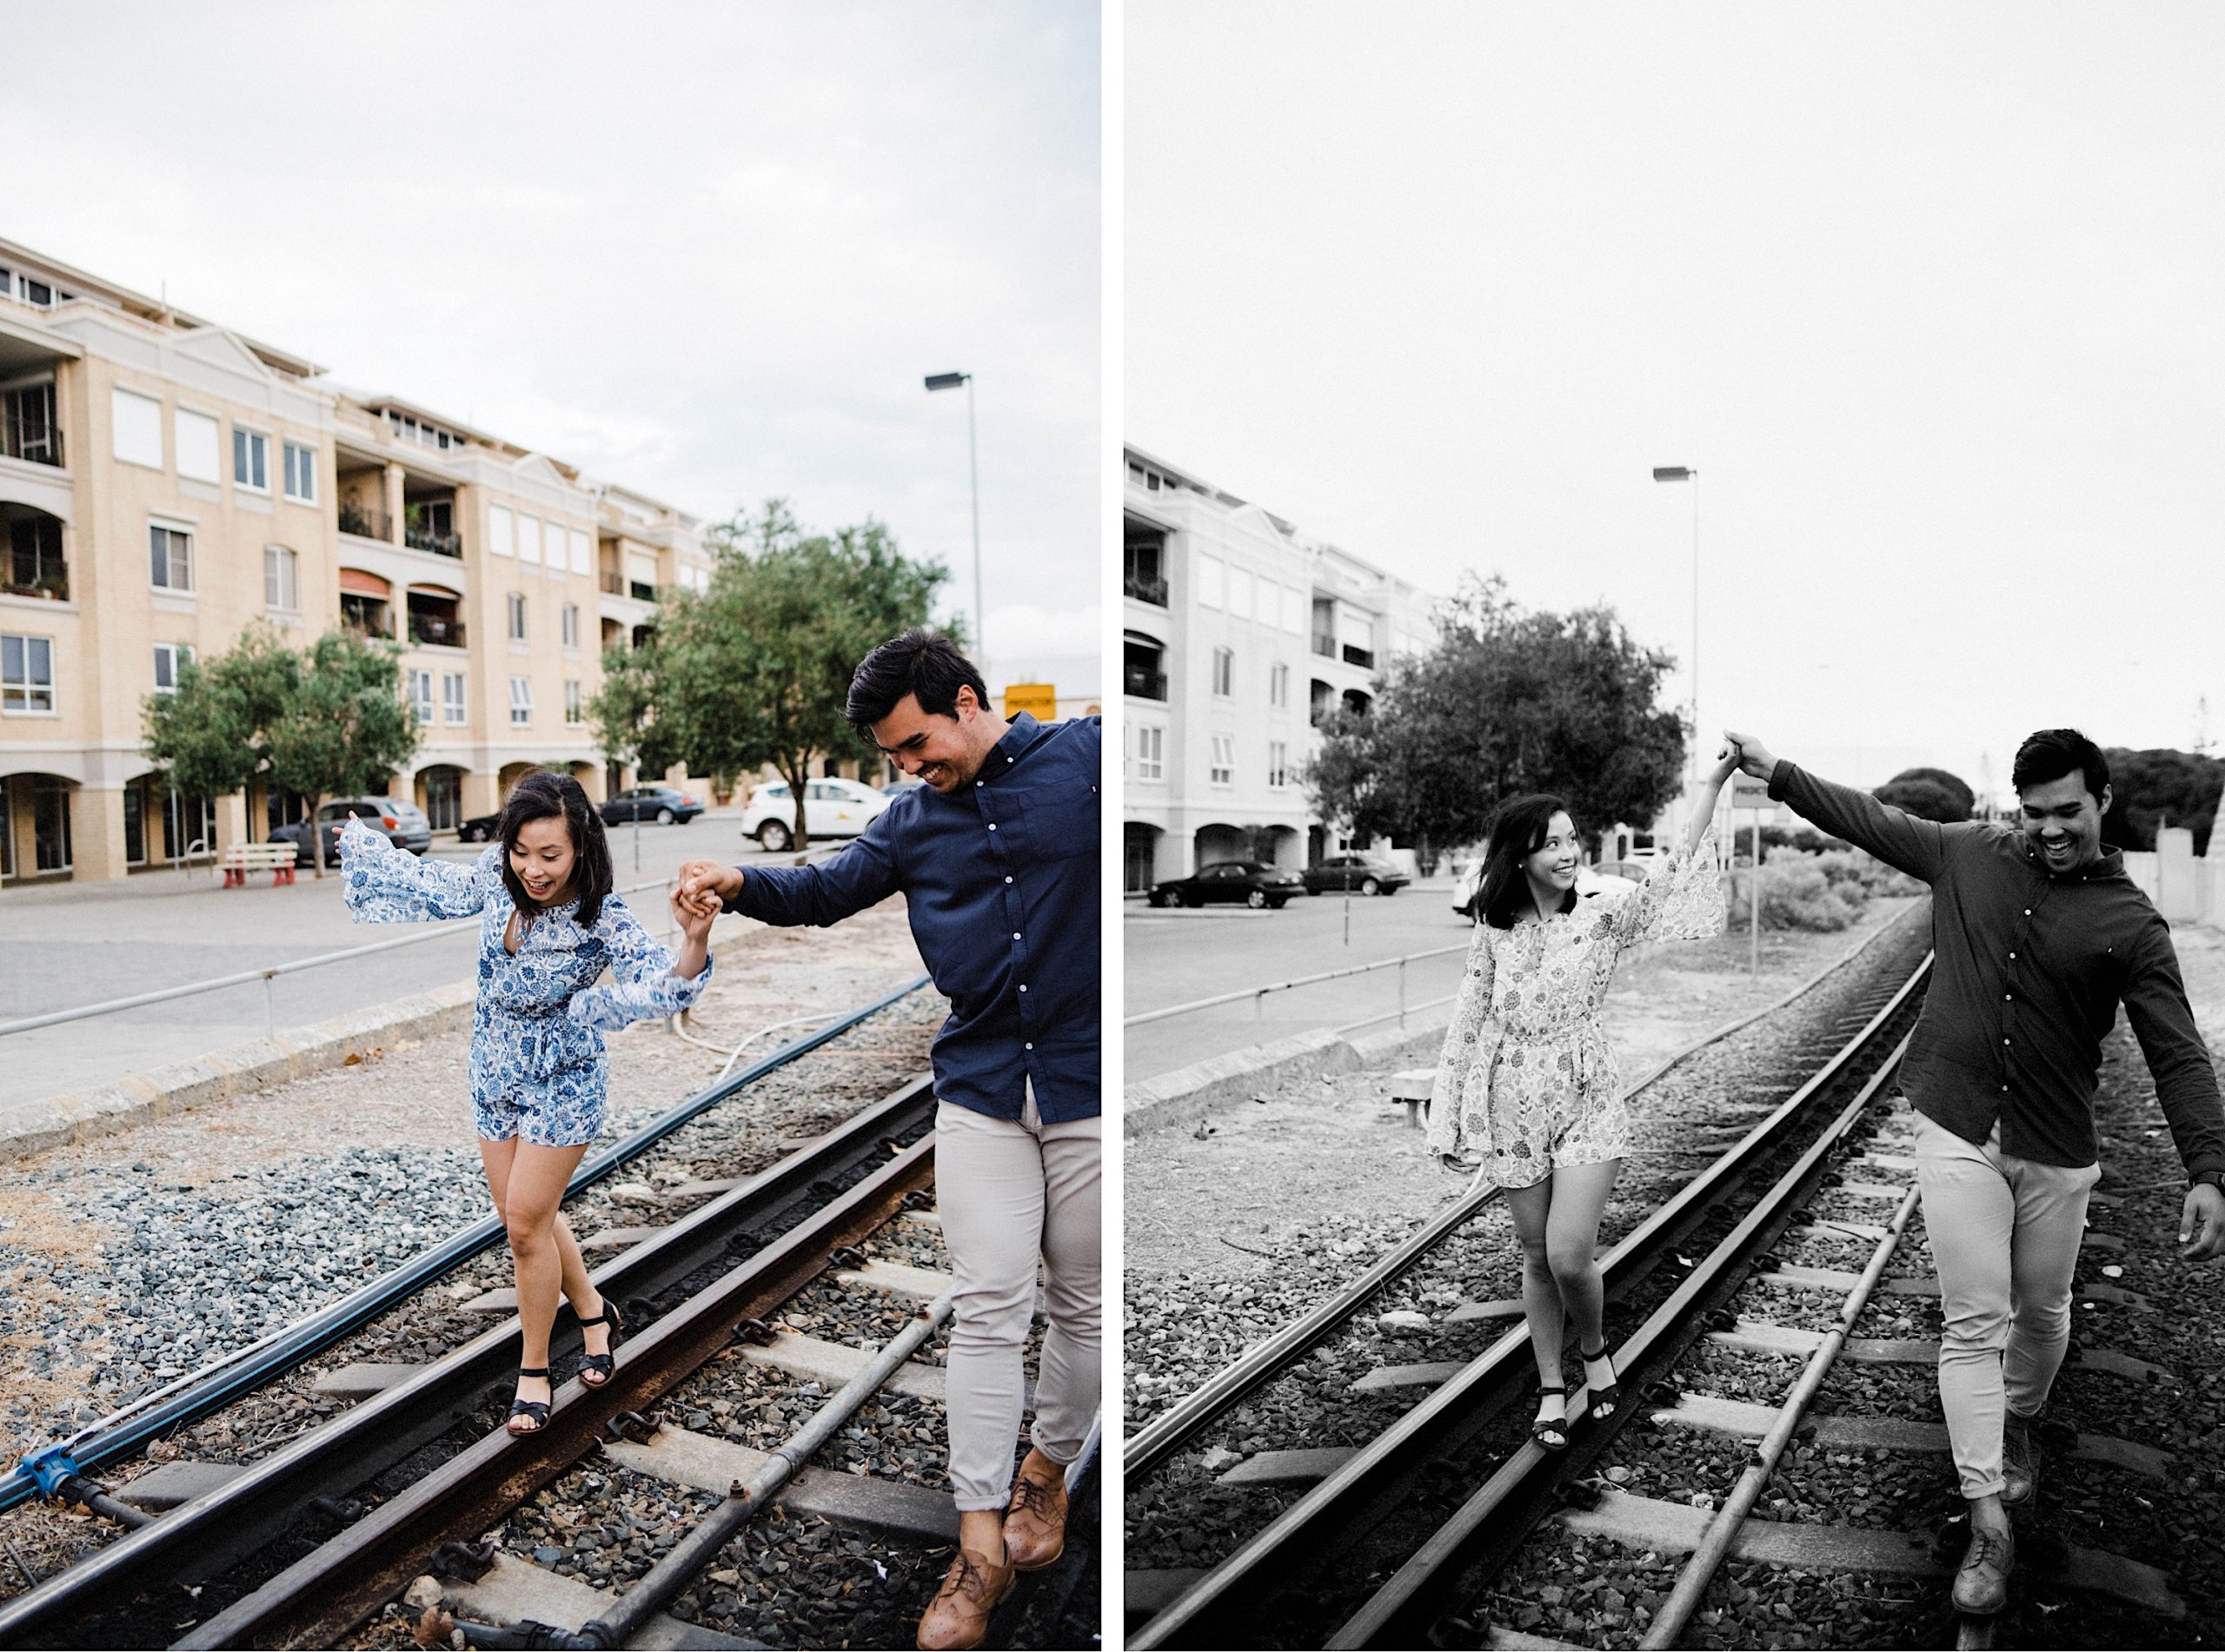 Two fun engagement photos, side by side, of a couple balancing on some unused train tracks and laughing.